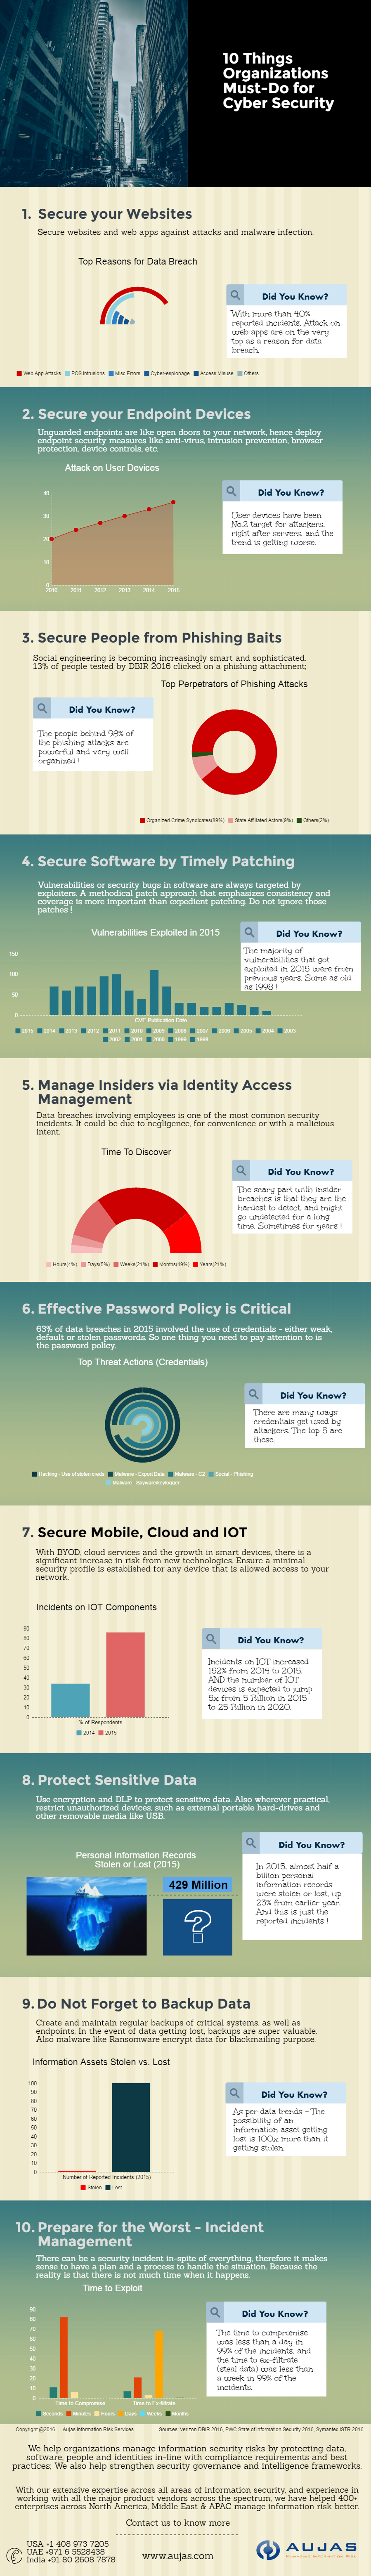 10 things organizations must-do from a cyber security perspective in 2016